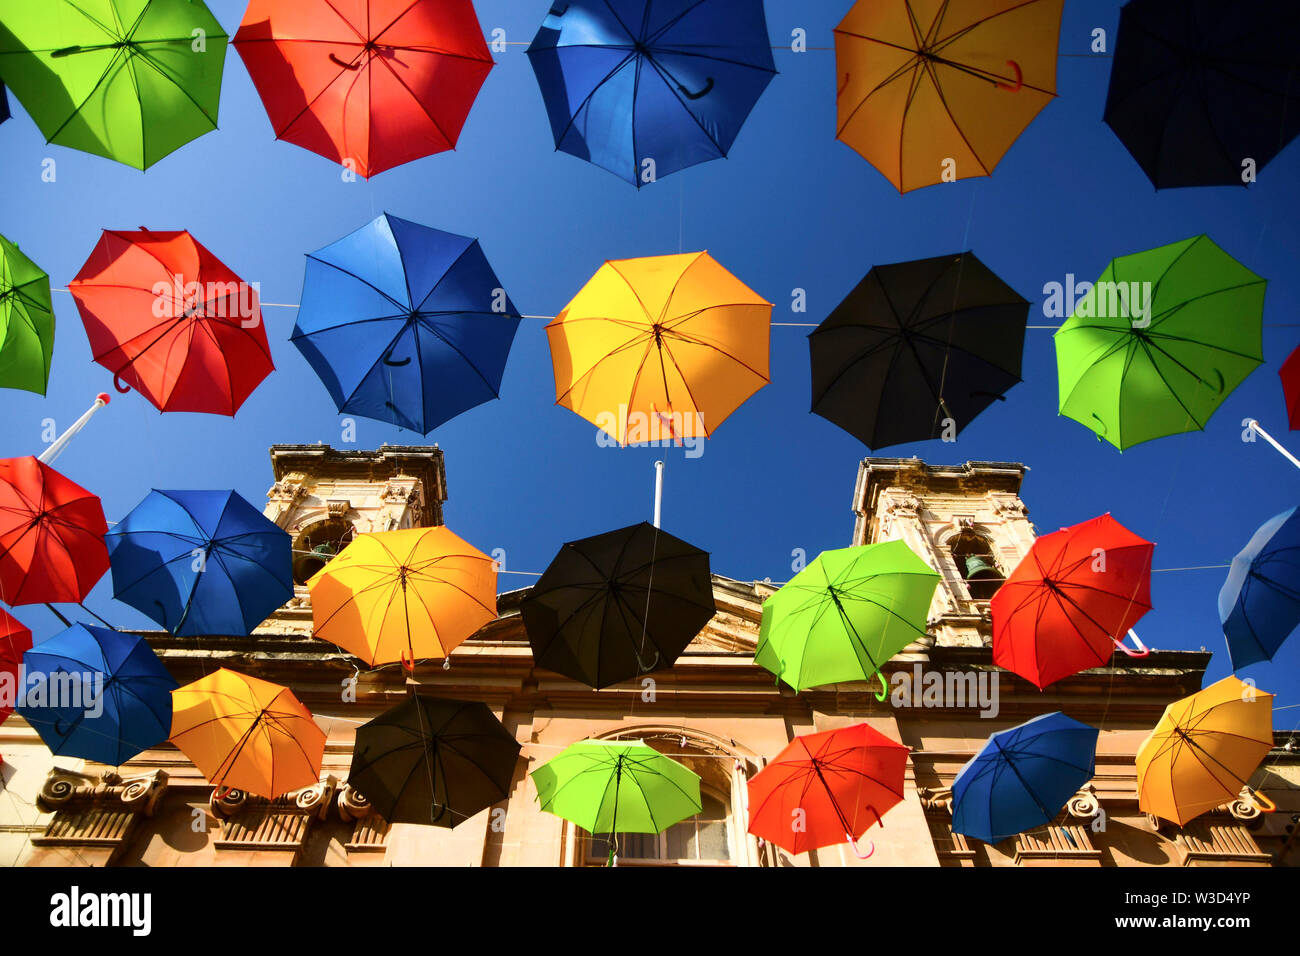 Beijing, China. 13th July, 2019. Photo taken on July 13, 2019 shows umbrellas suspended in the air along a street to bring back the popular 'Umbrella Street' spectacle in Zabbar, Malta. Credit: Jonathan Borg/Xinhua/Alamy Live News - Stock Image